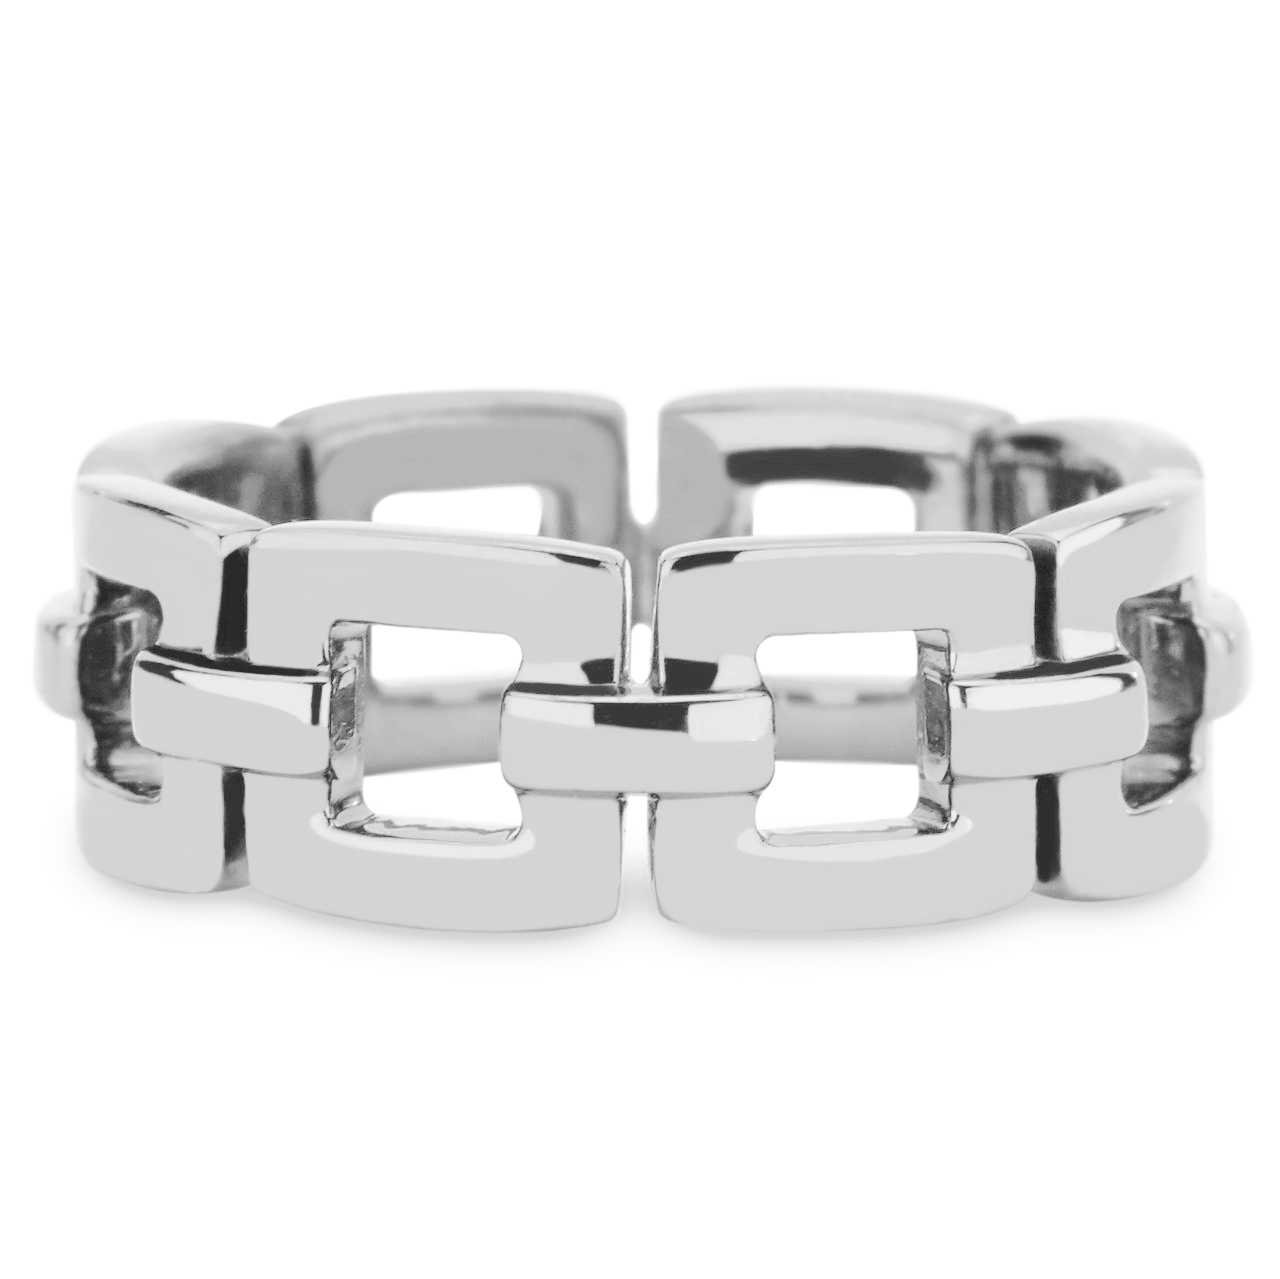 Mens Marcello Band in 14k White Gold by GiGi Ferranti